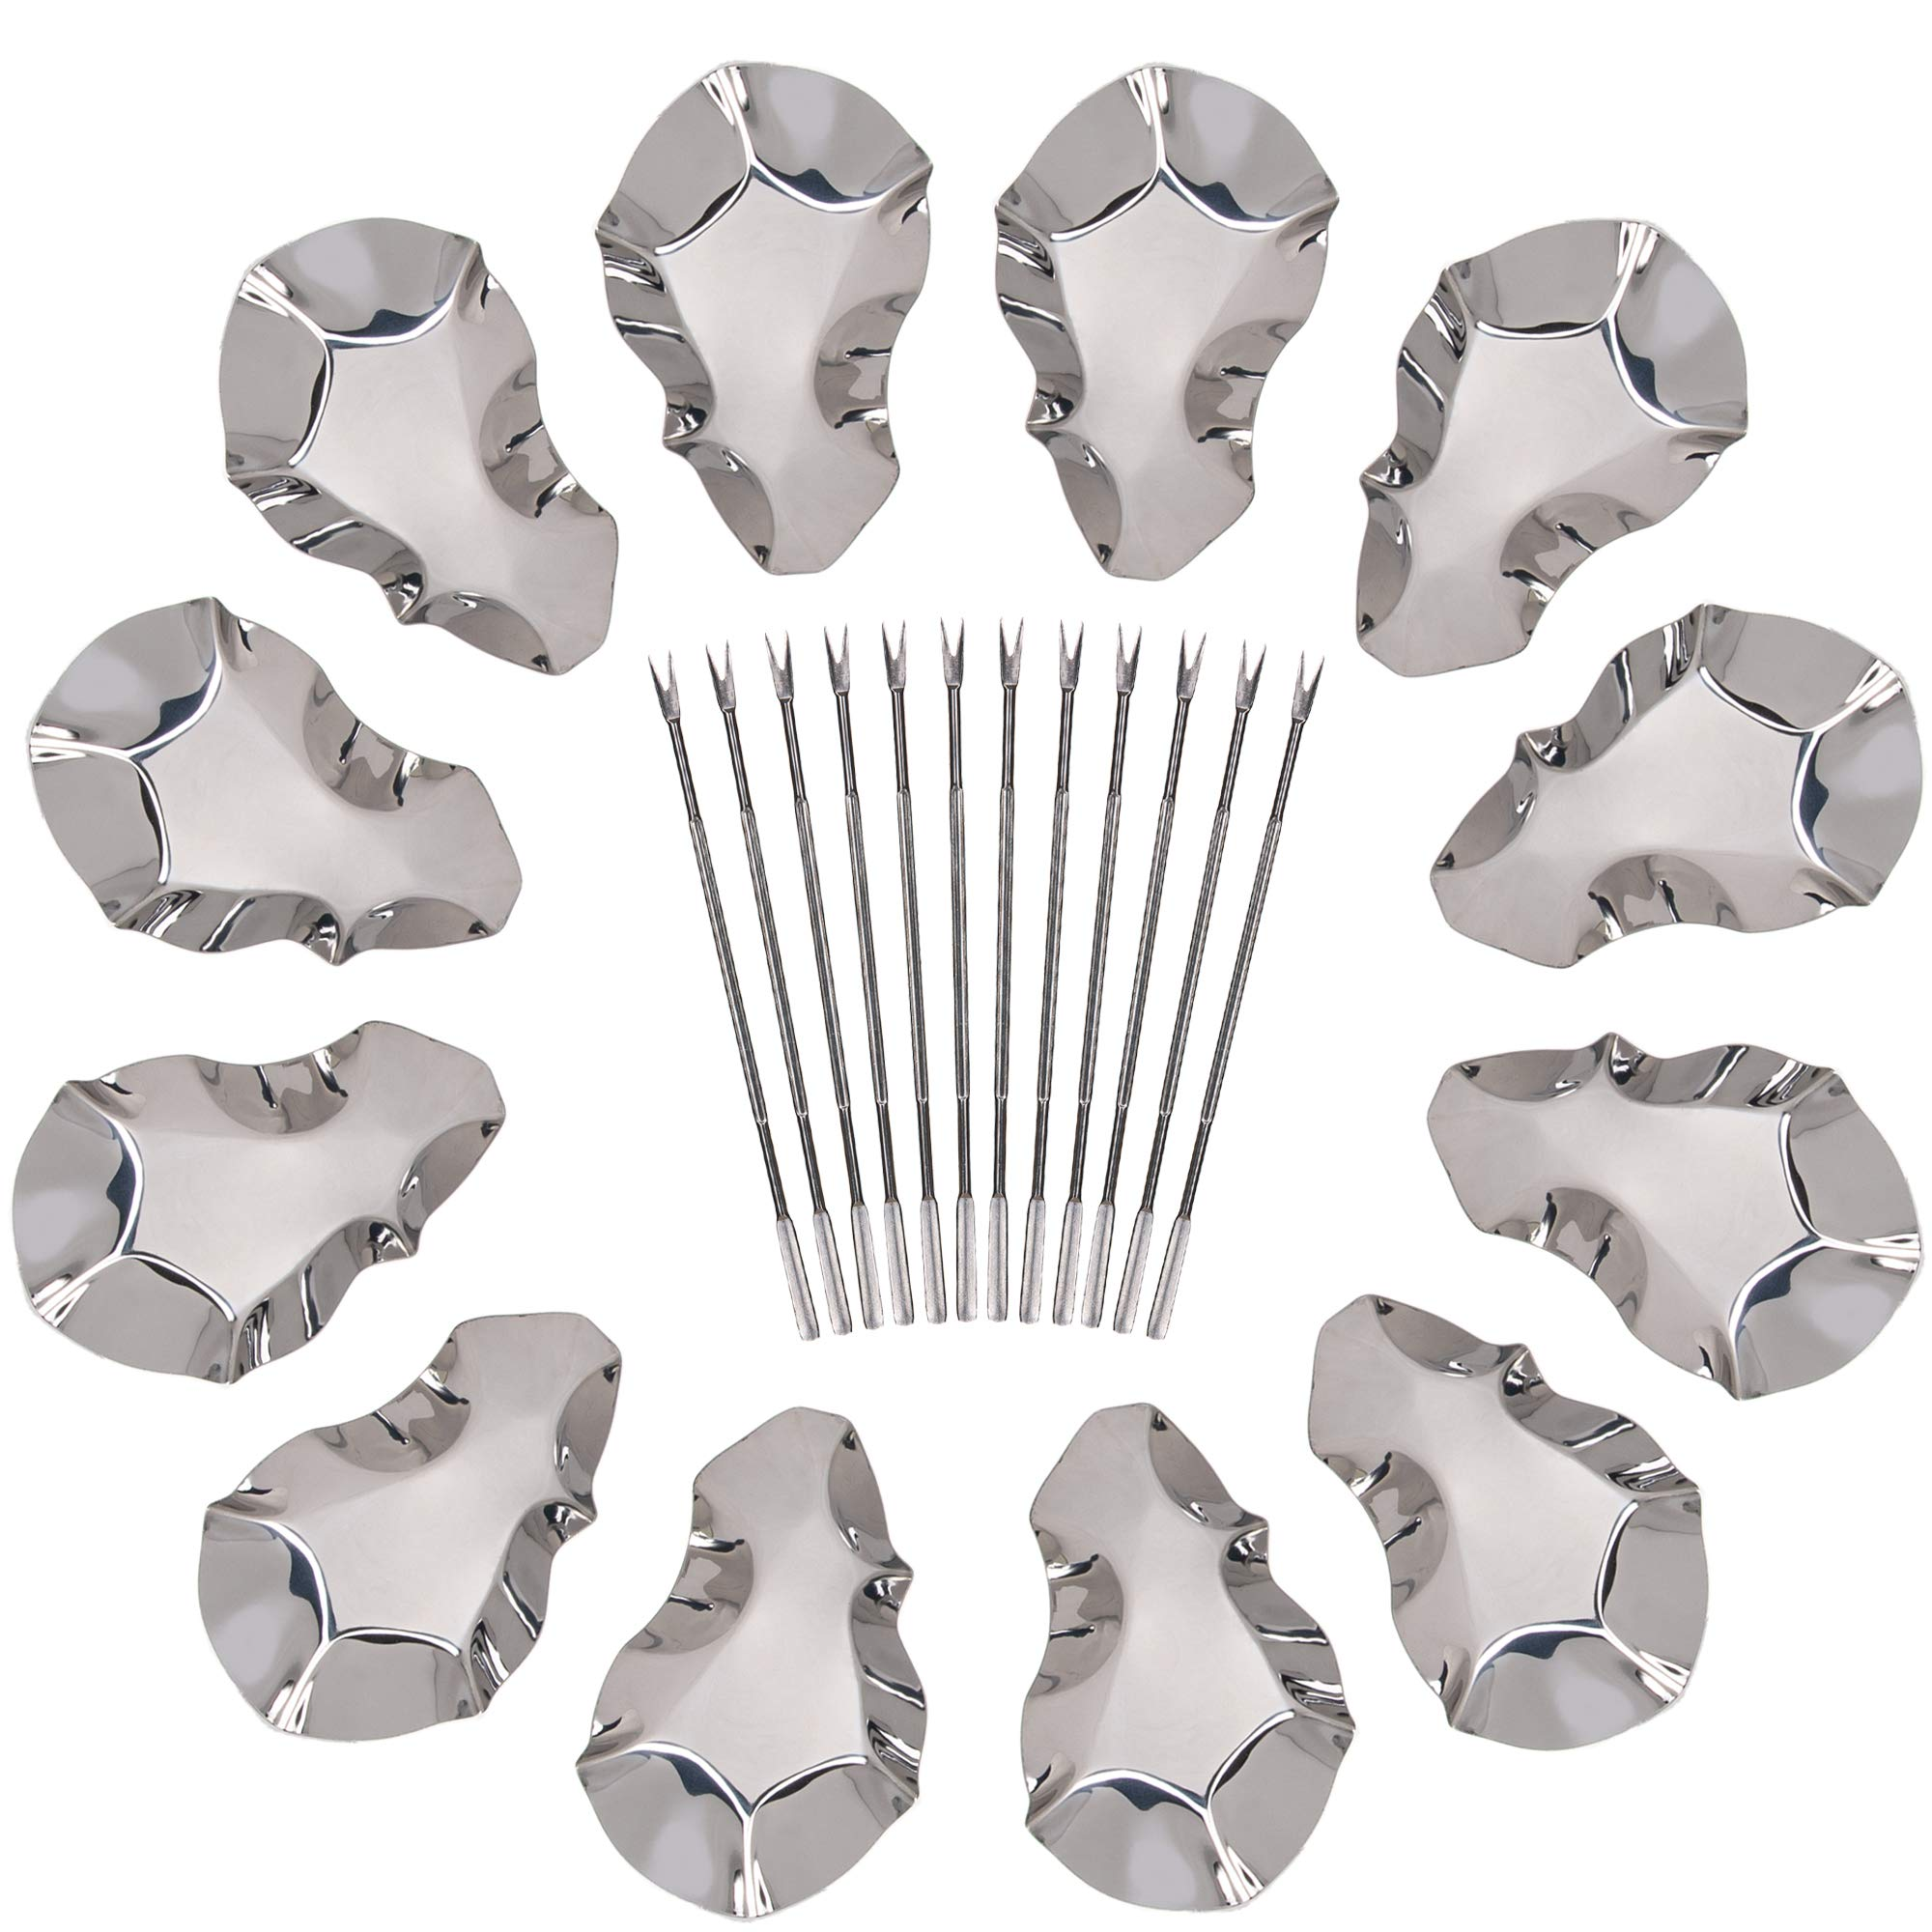 Oyster Shells Stainless Steel Reusable Grill Tray Serving Shell 12 Pack for Grilling and Cooking Oysters 24 Piece Set Seafood Tools Complete with 12 Forks